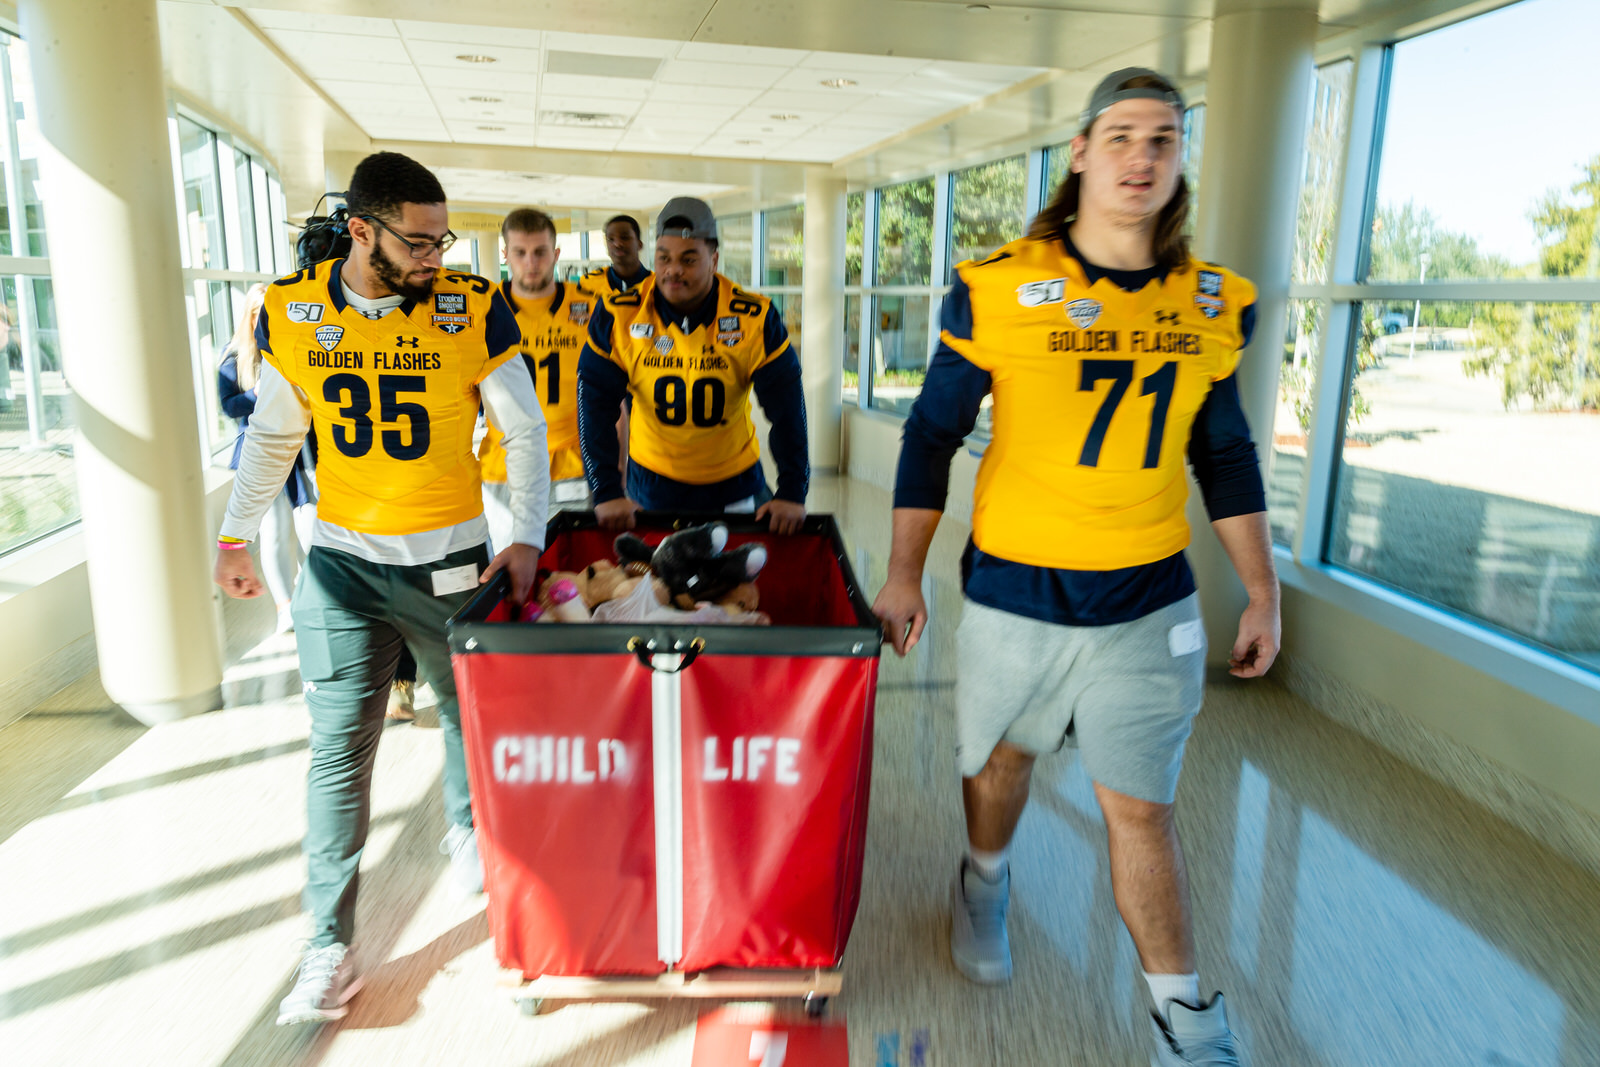 Kent State football players bring toys and games to kids at Children's Medical Center Plano